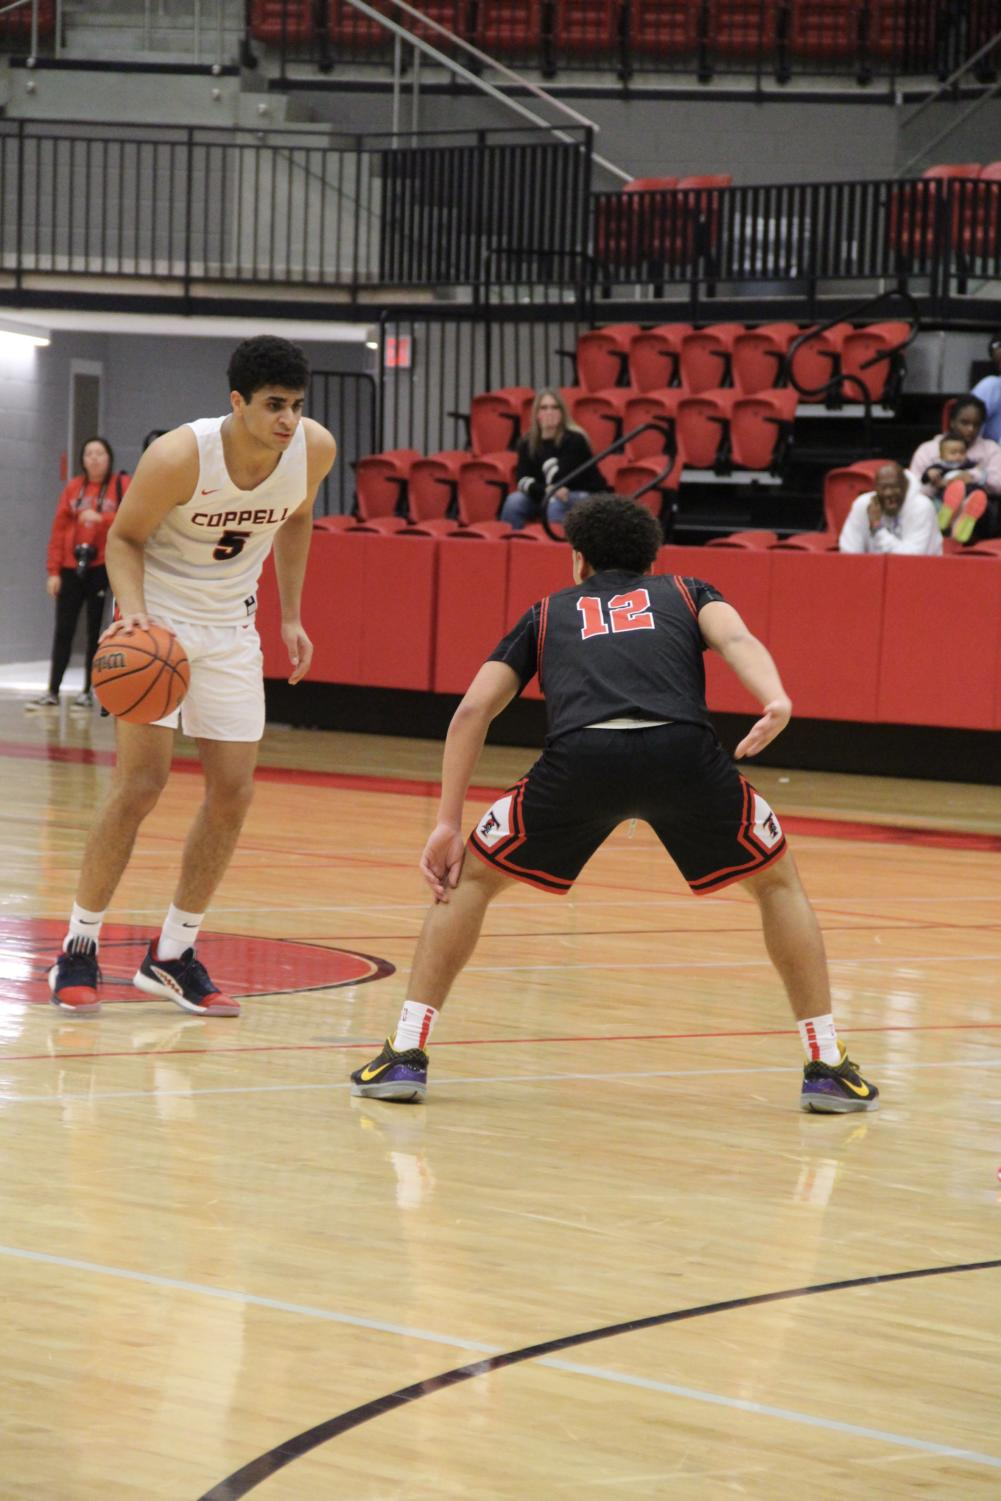 Coppel senior guard Adam Moussa looks to cross opponent in the CHS Arena on Tuesday against Trinity. Coppell defeated the Trojans, 58-38.